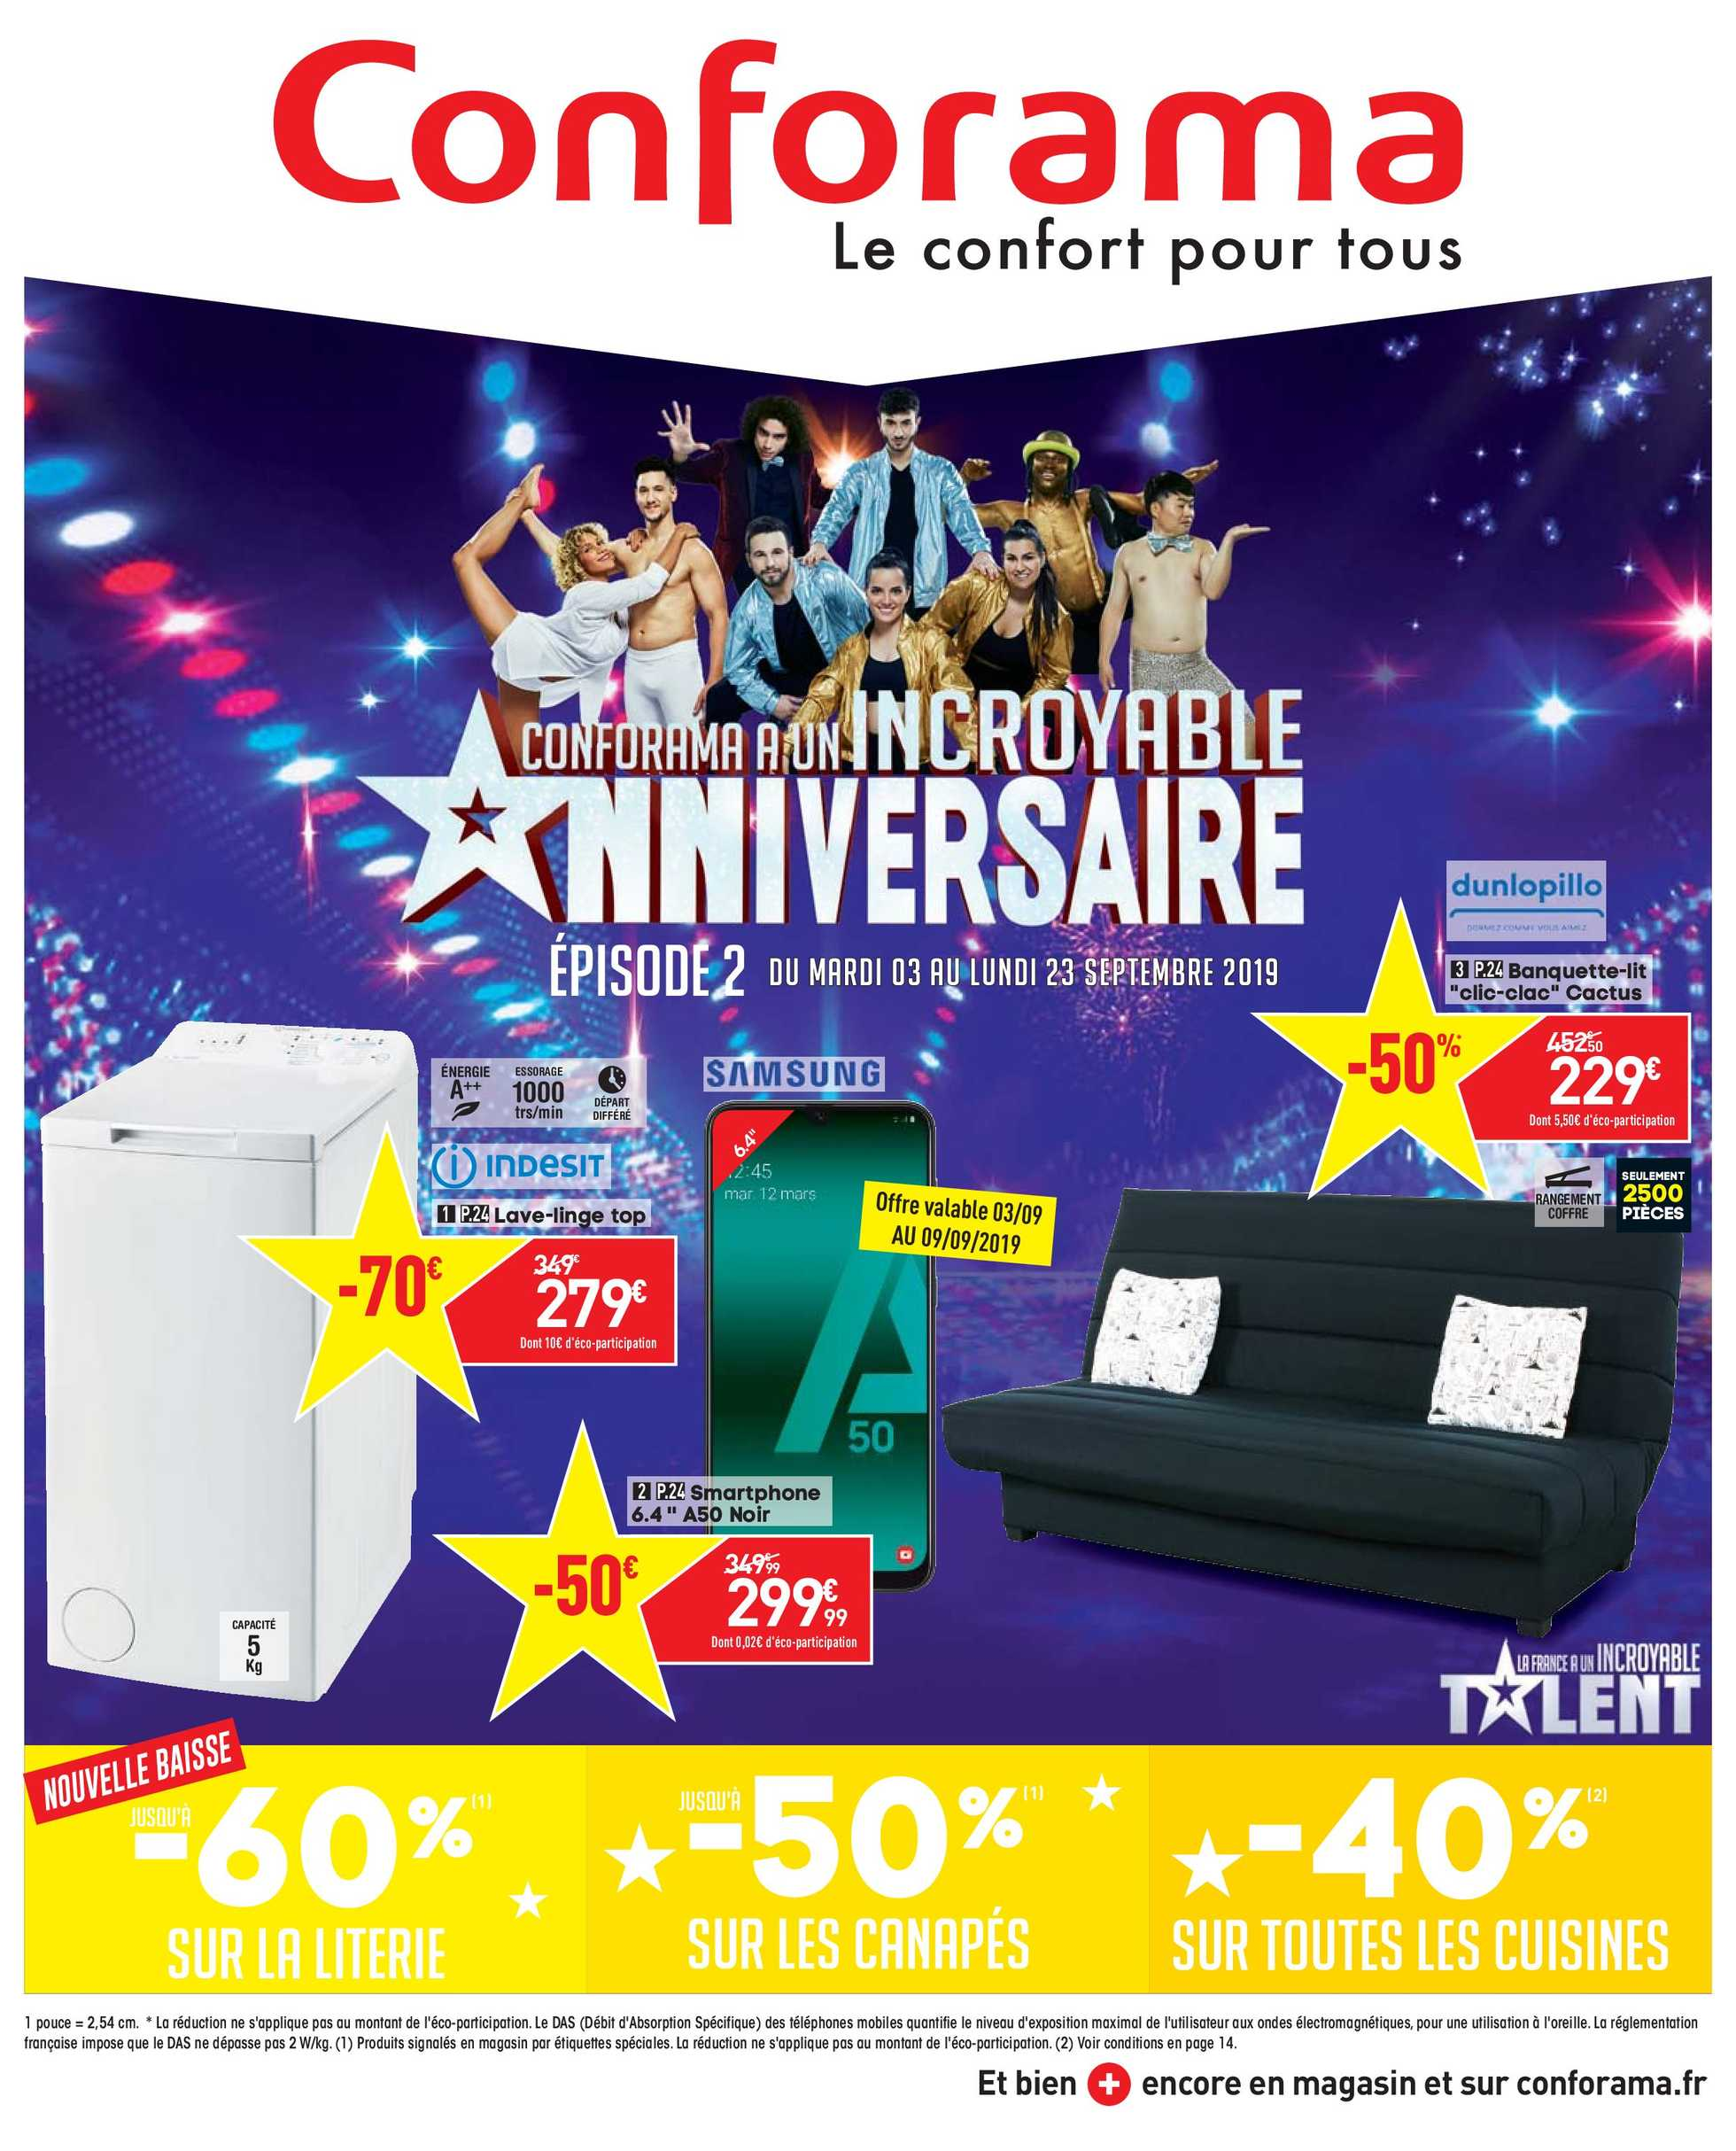 Conforama - Catalogue Septembre - 03-09-2019 | fr.promotons.com